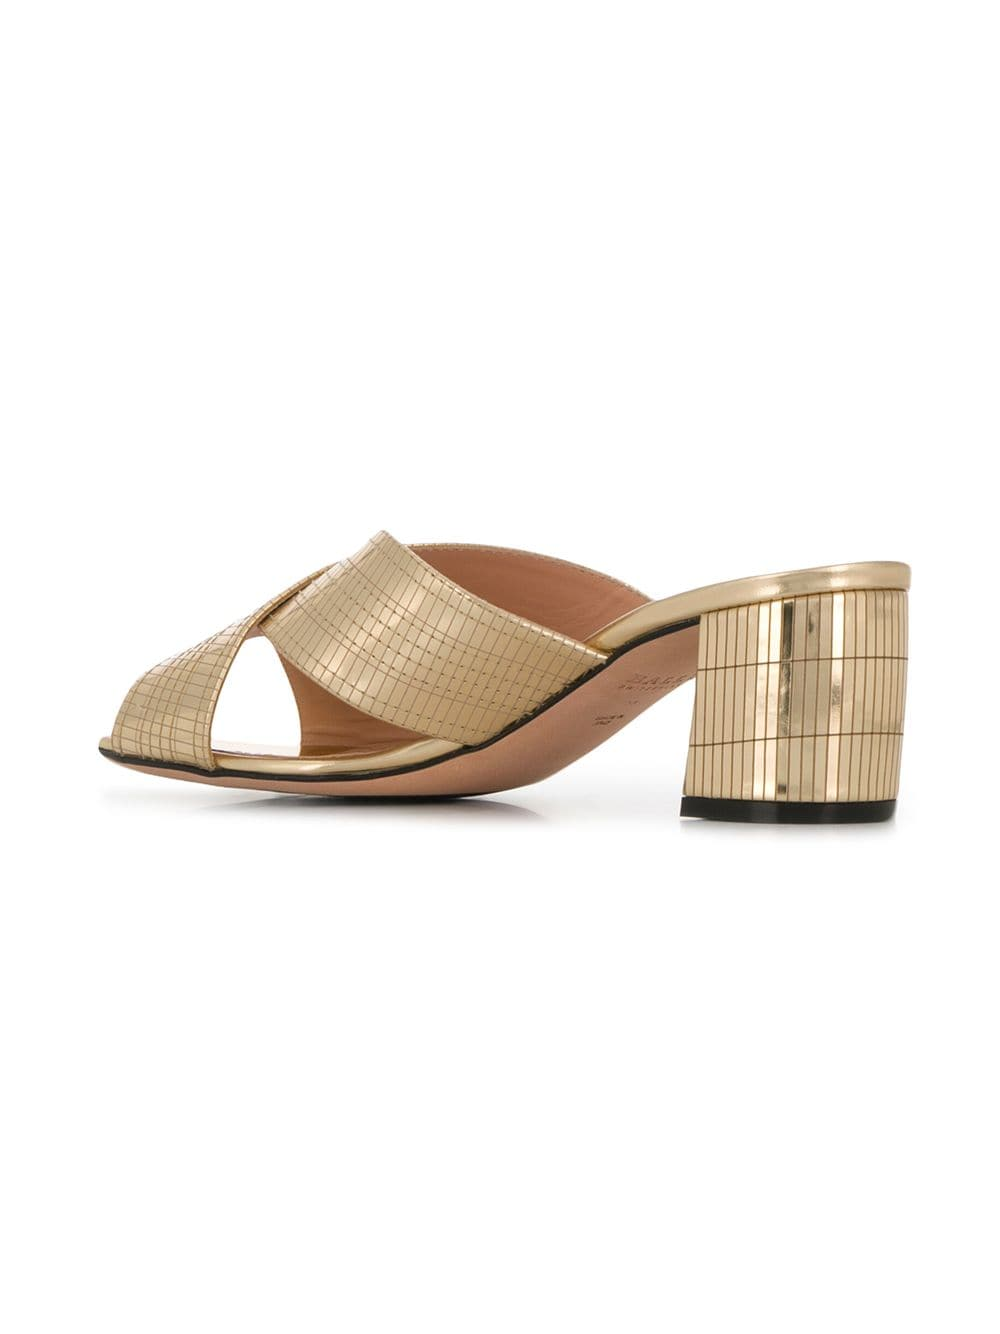 Picture of Bally | Evoria Sandals